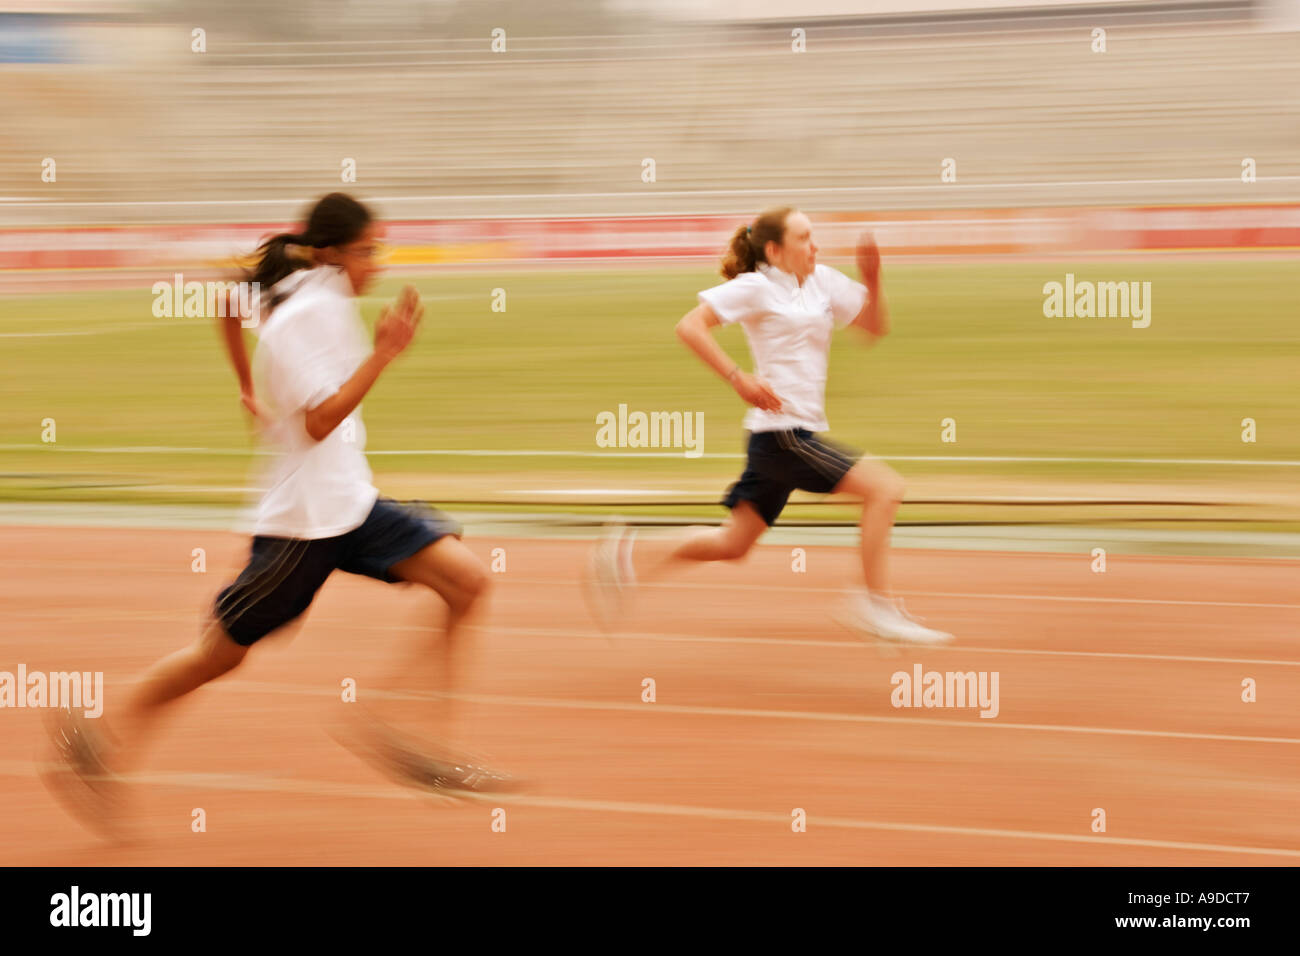 Students compete in 100m sprint race - Stock Image